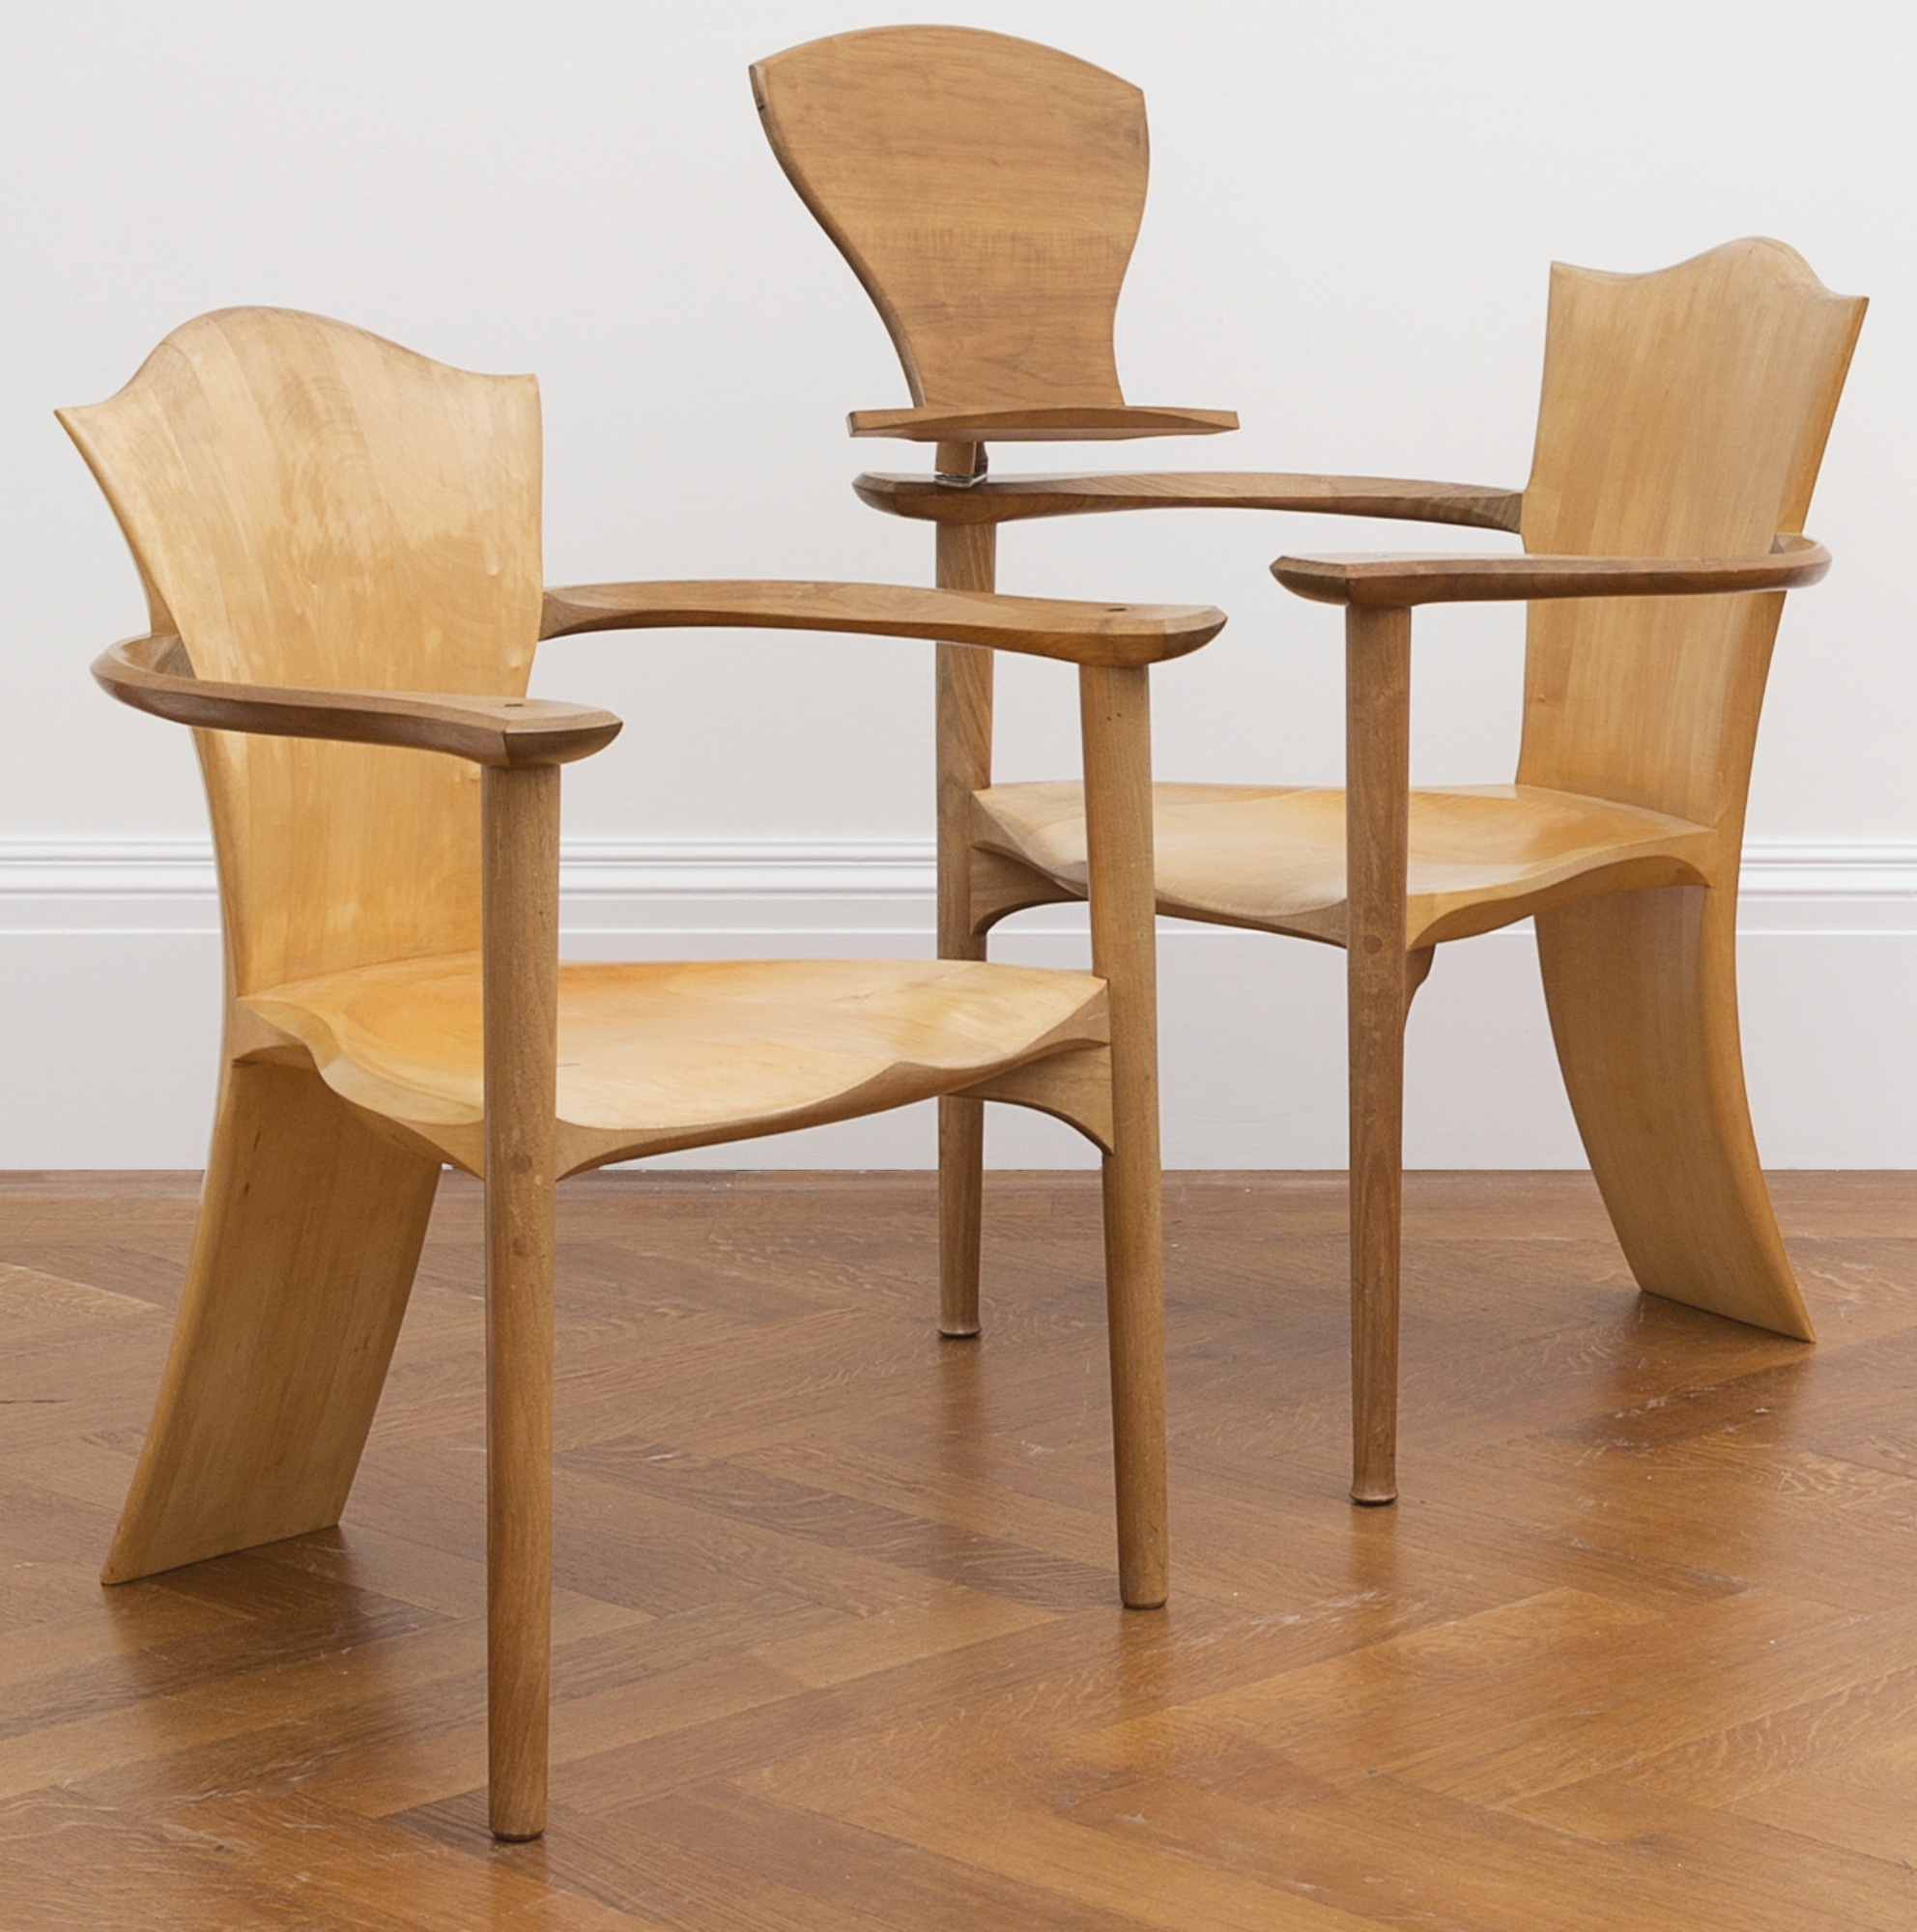 Matthew Burt - Two Reading Chairs-1996